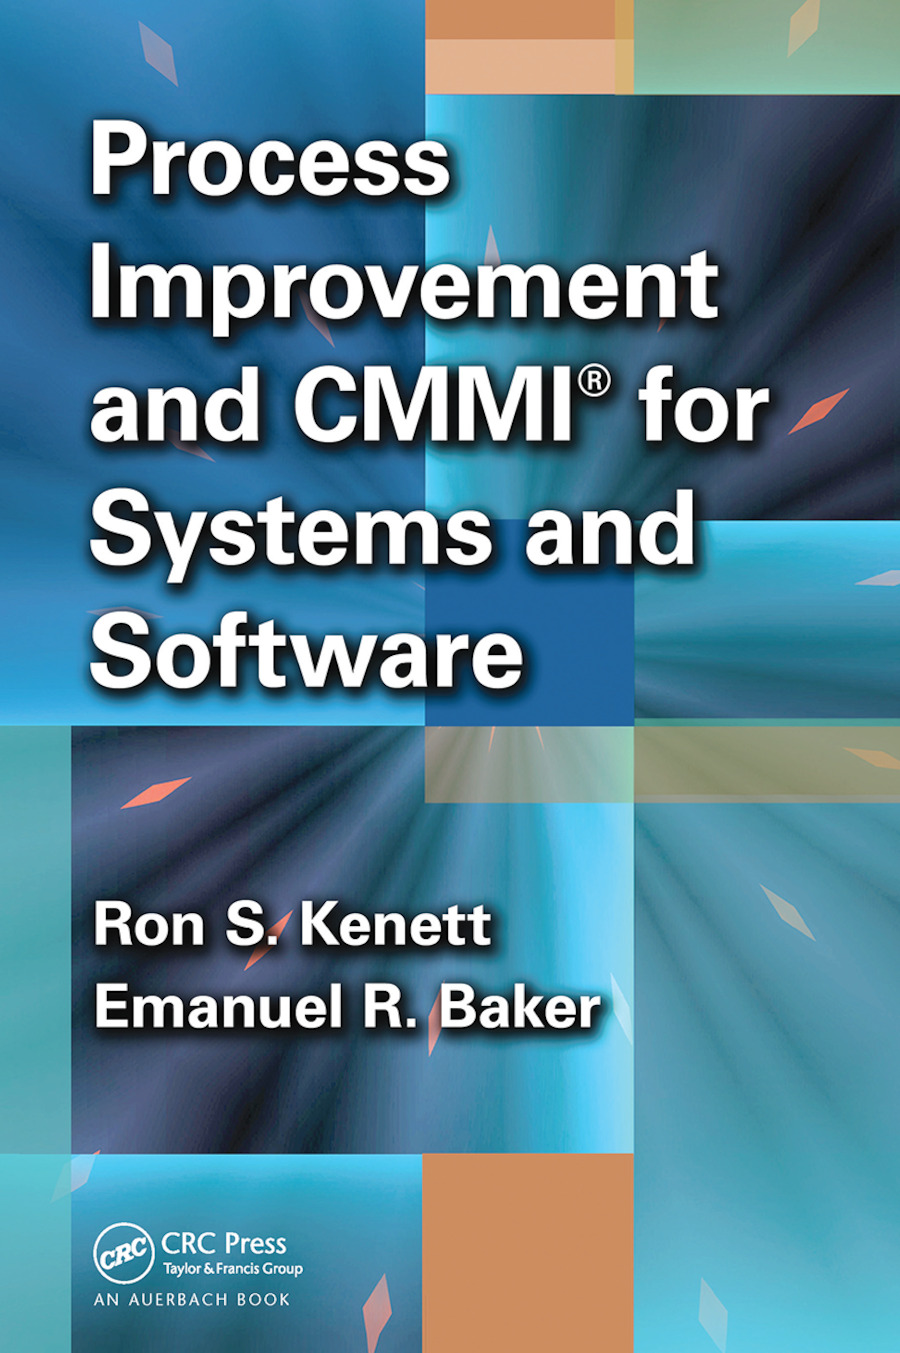 Process Improvement and CMMI for Systems and Software